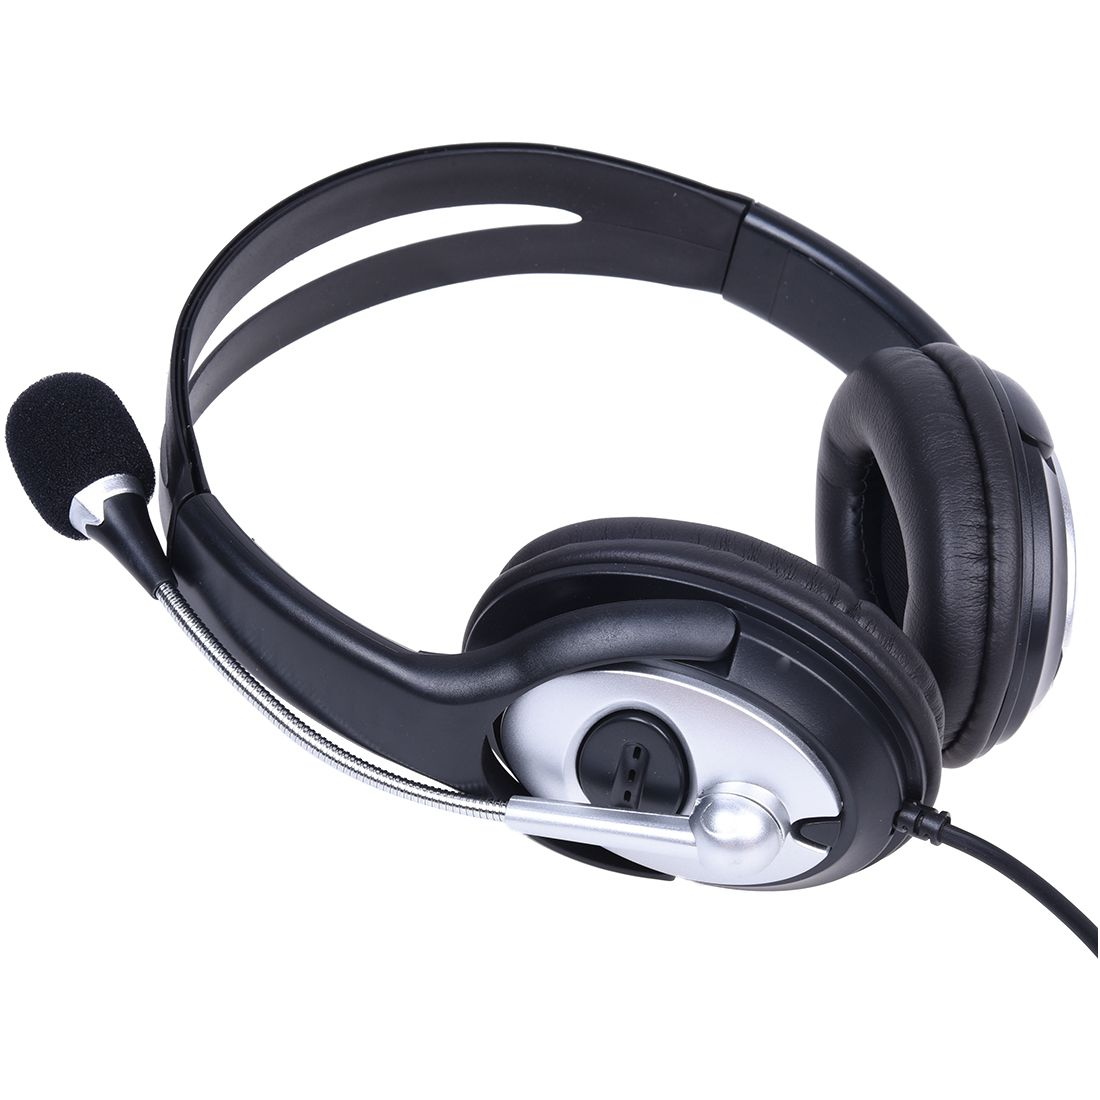 HOT-USB Stereo Headphone Earphone with MIC for Gaming Console Surround Sound PC Headset